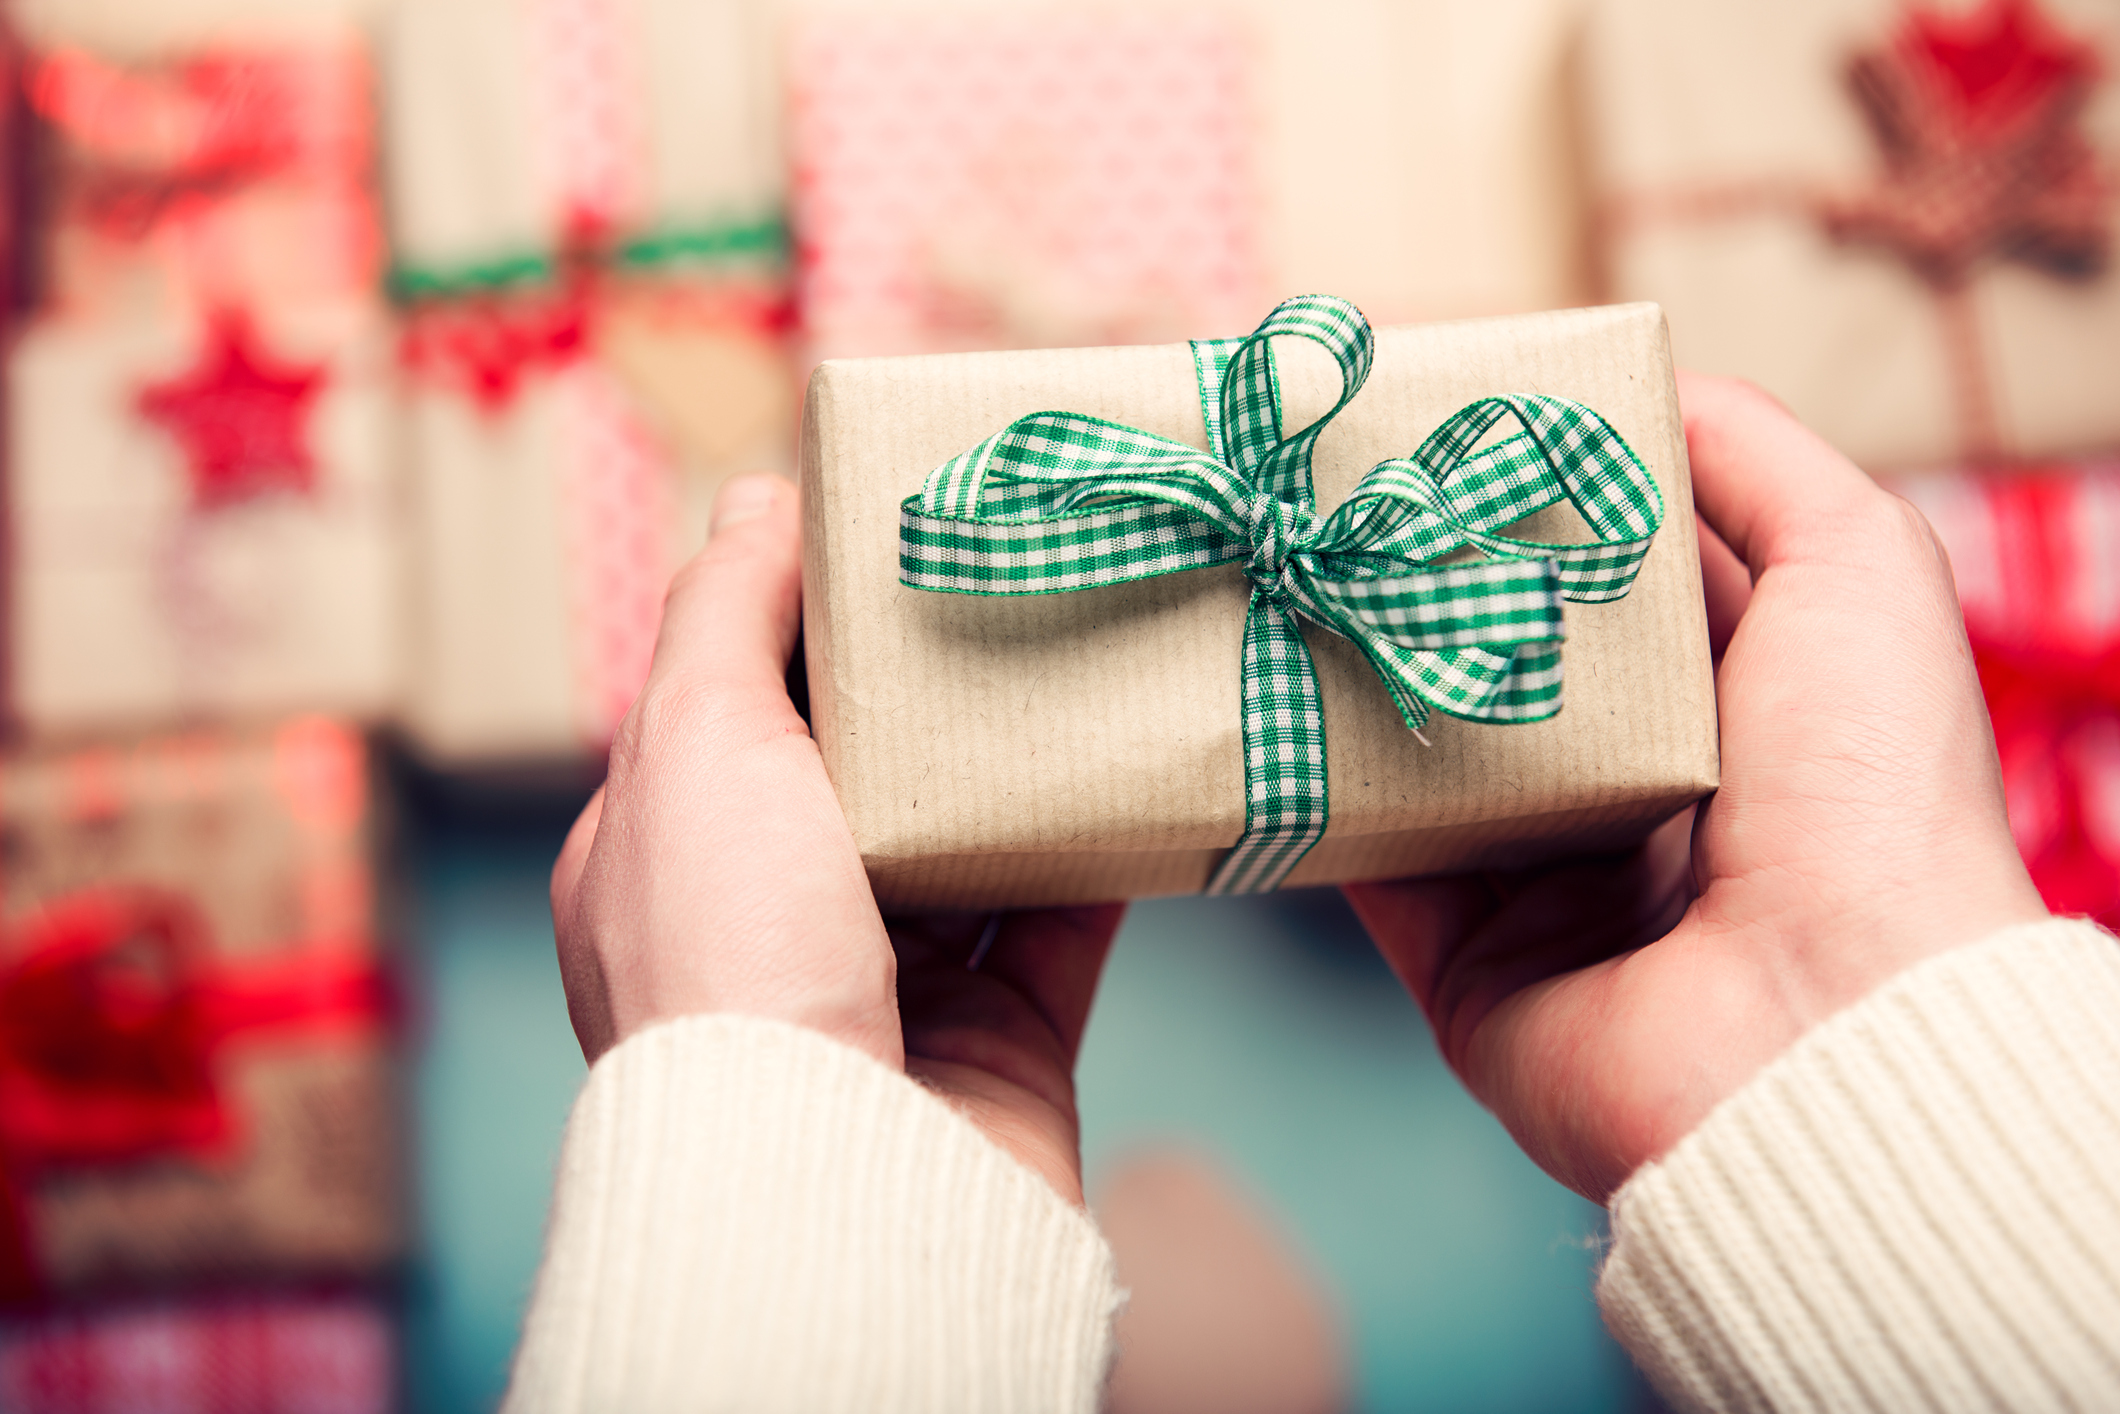 A woman holding a gift